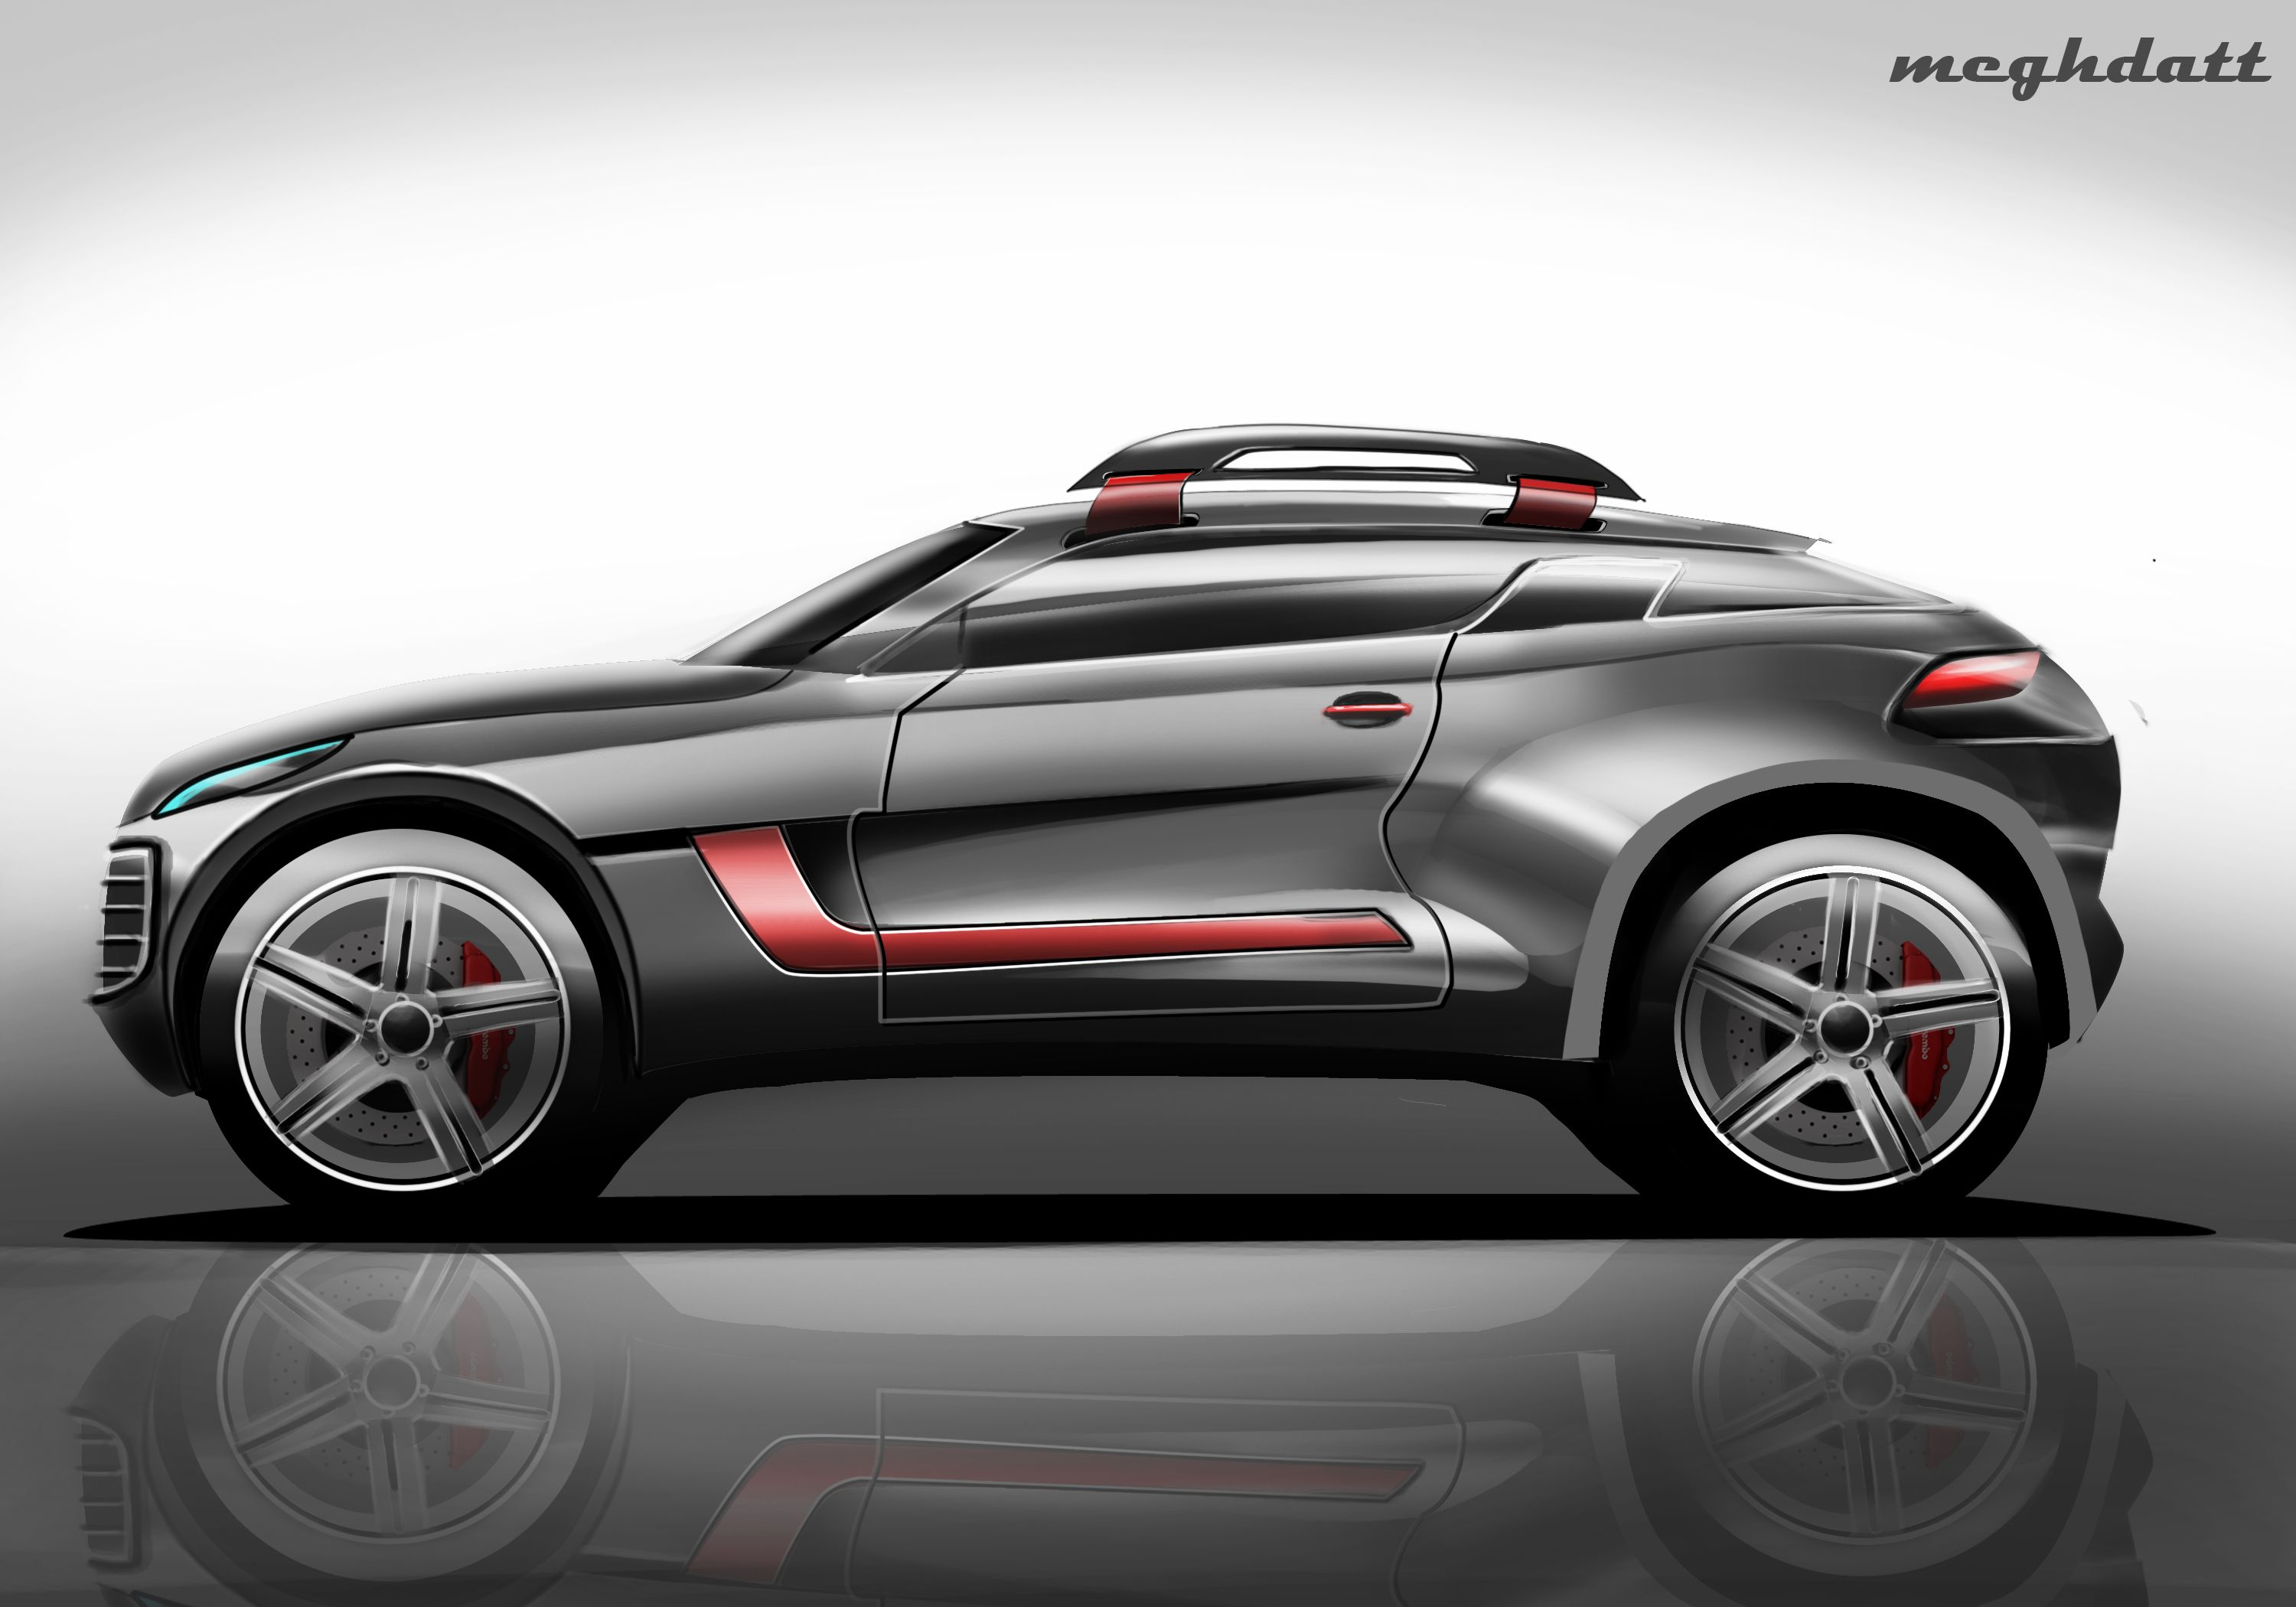 Suv Concept Side View Render With Images Suv Futuristic Cars Car